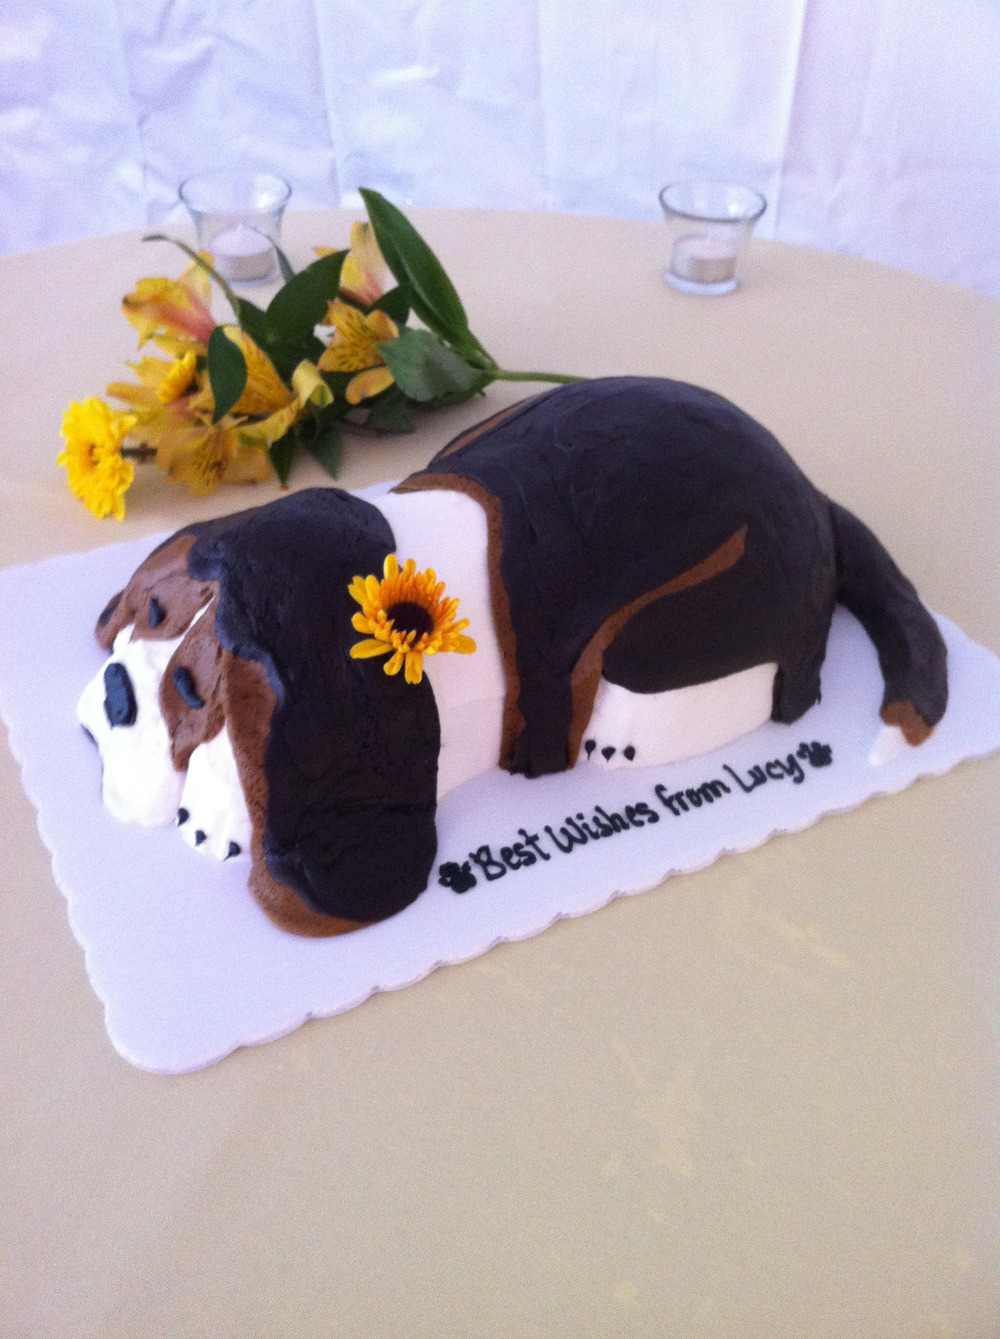 Dog Shaped Cake (Beagle)